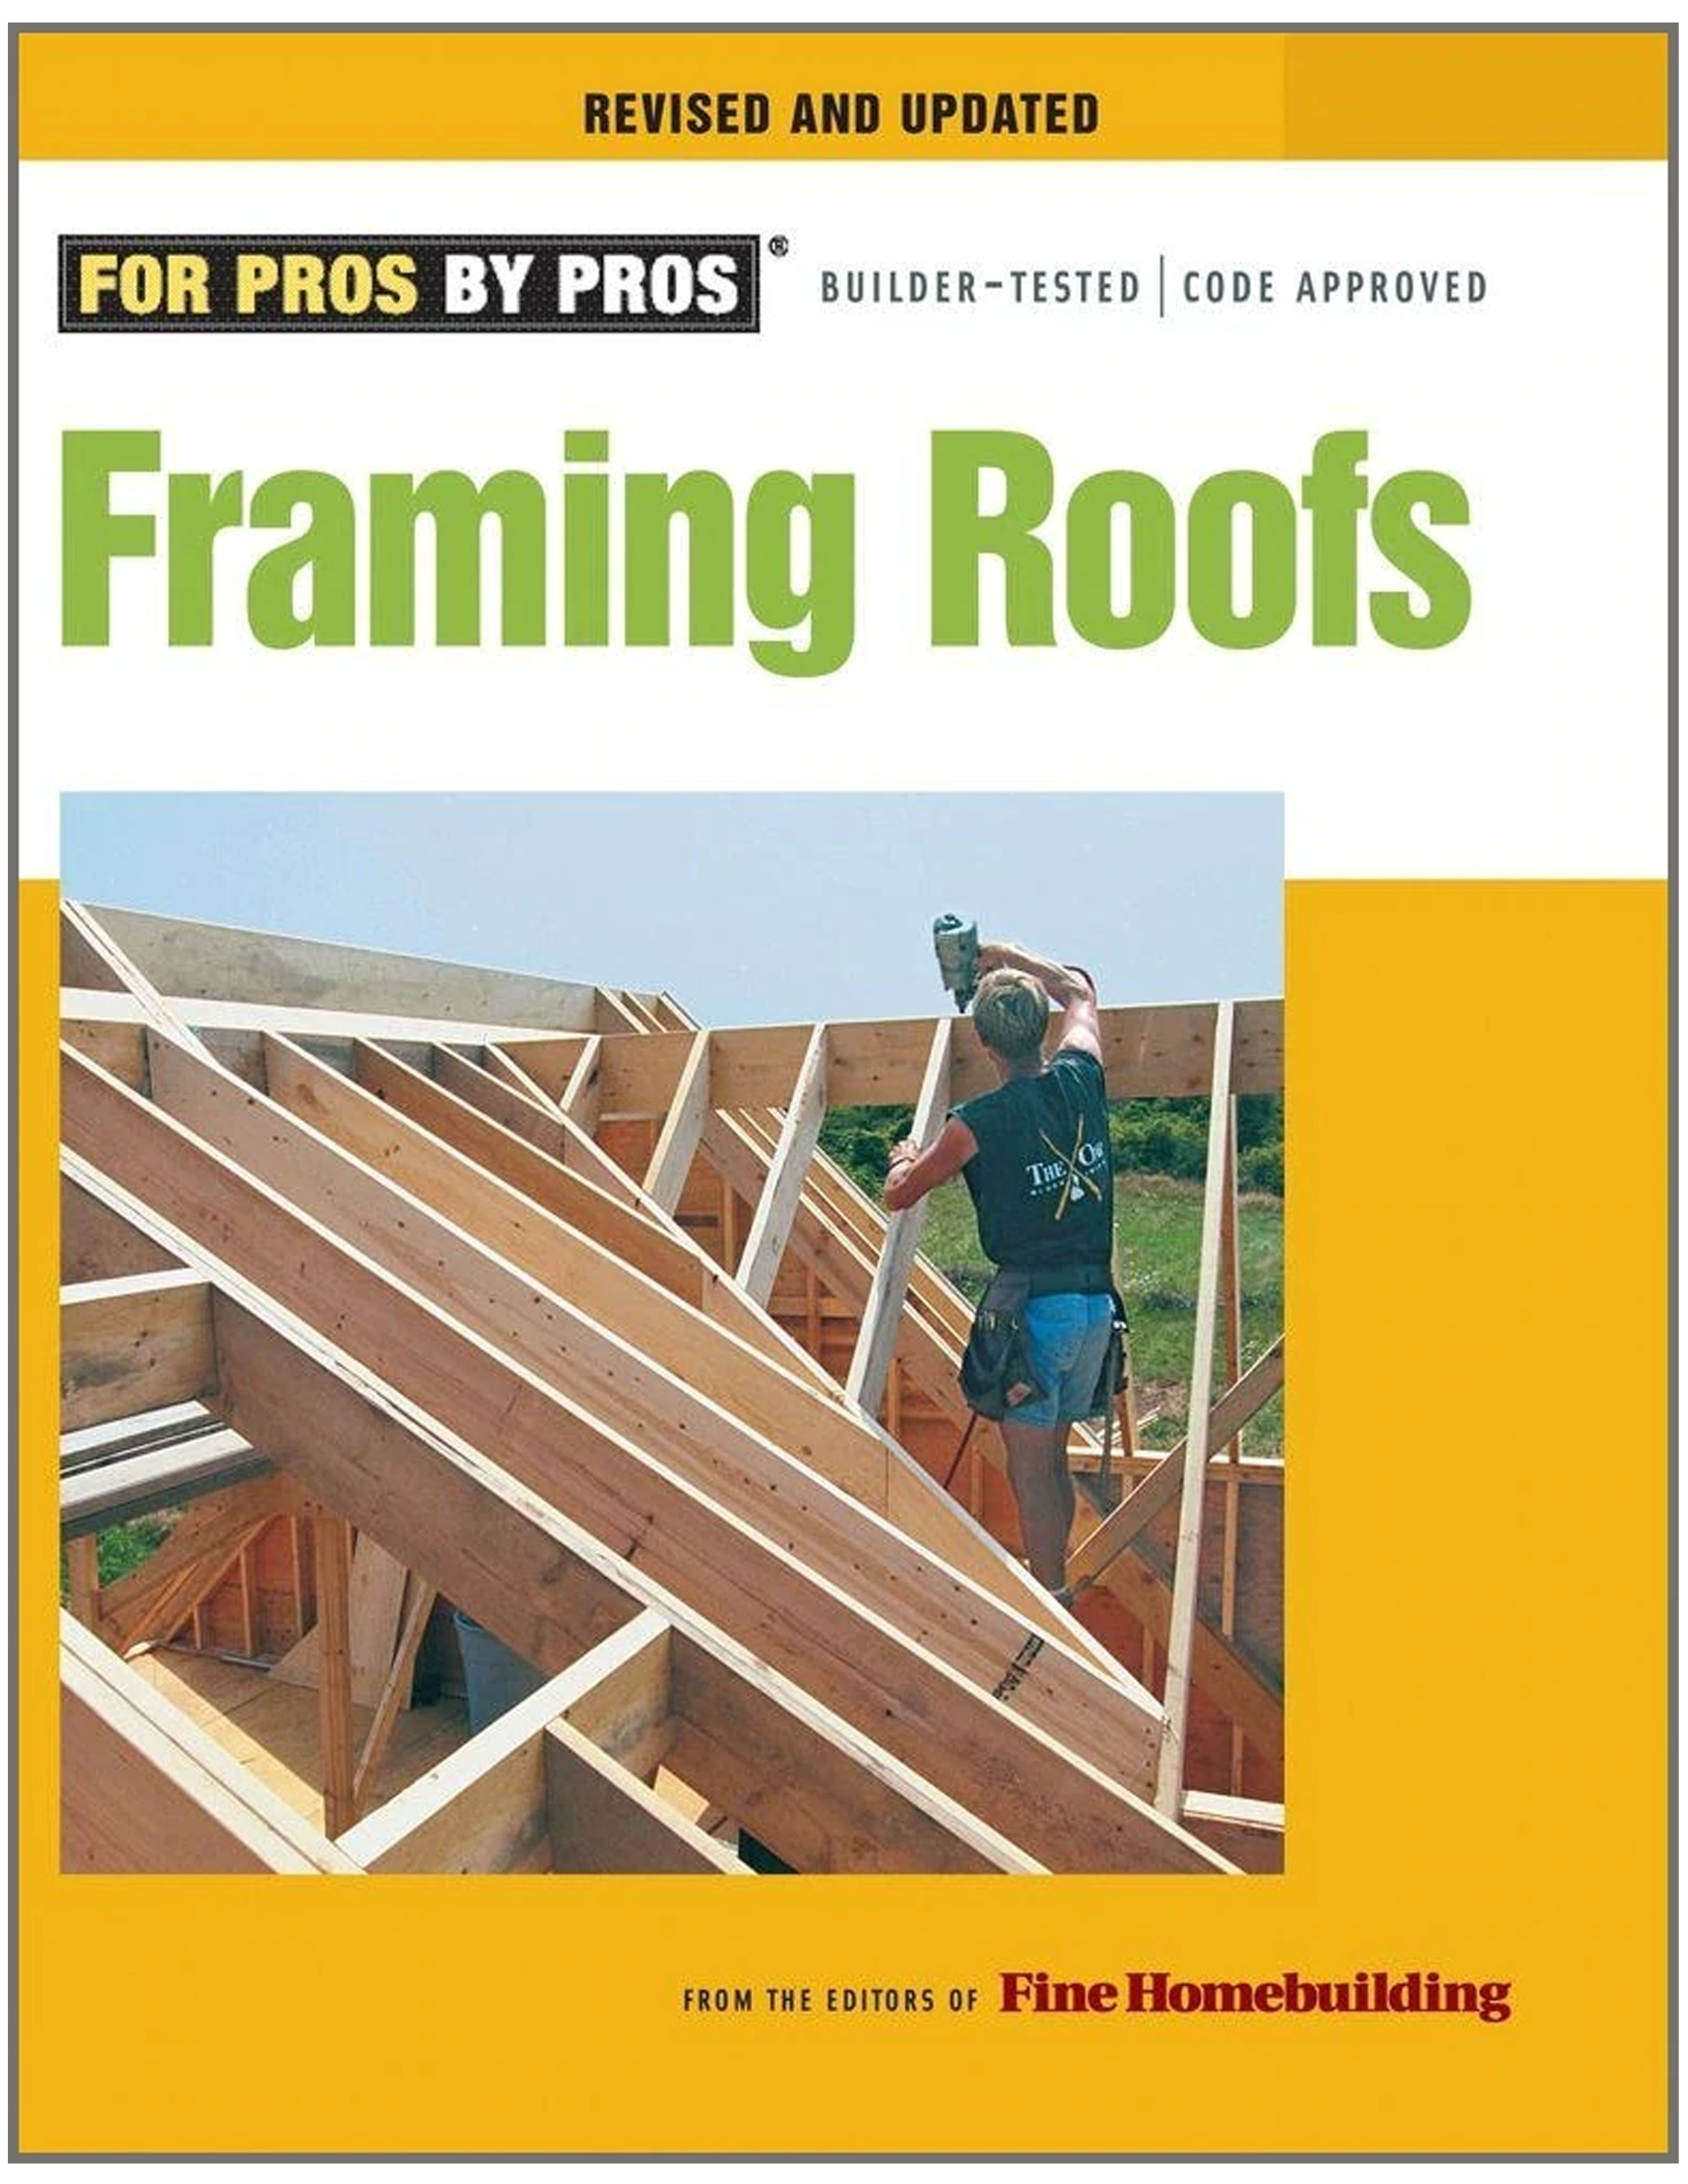 For Pros By Pros: Framing Roofs Completely Revised and Updated